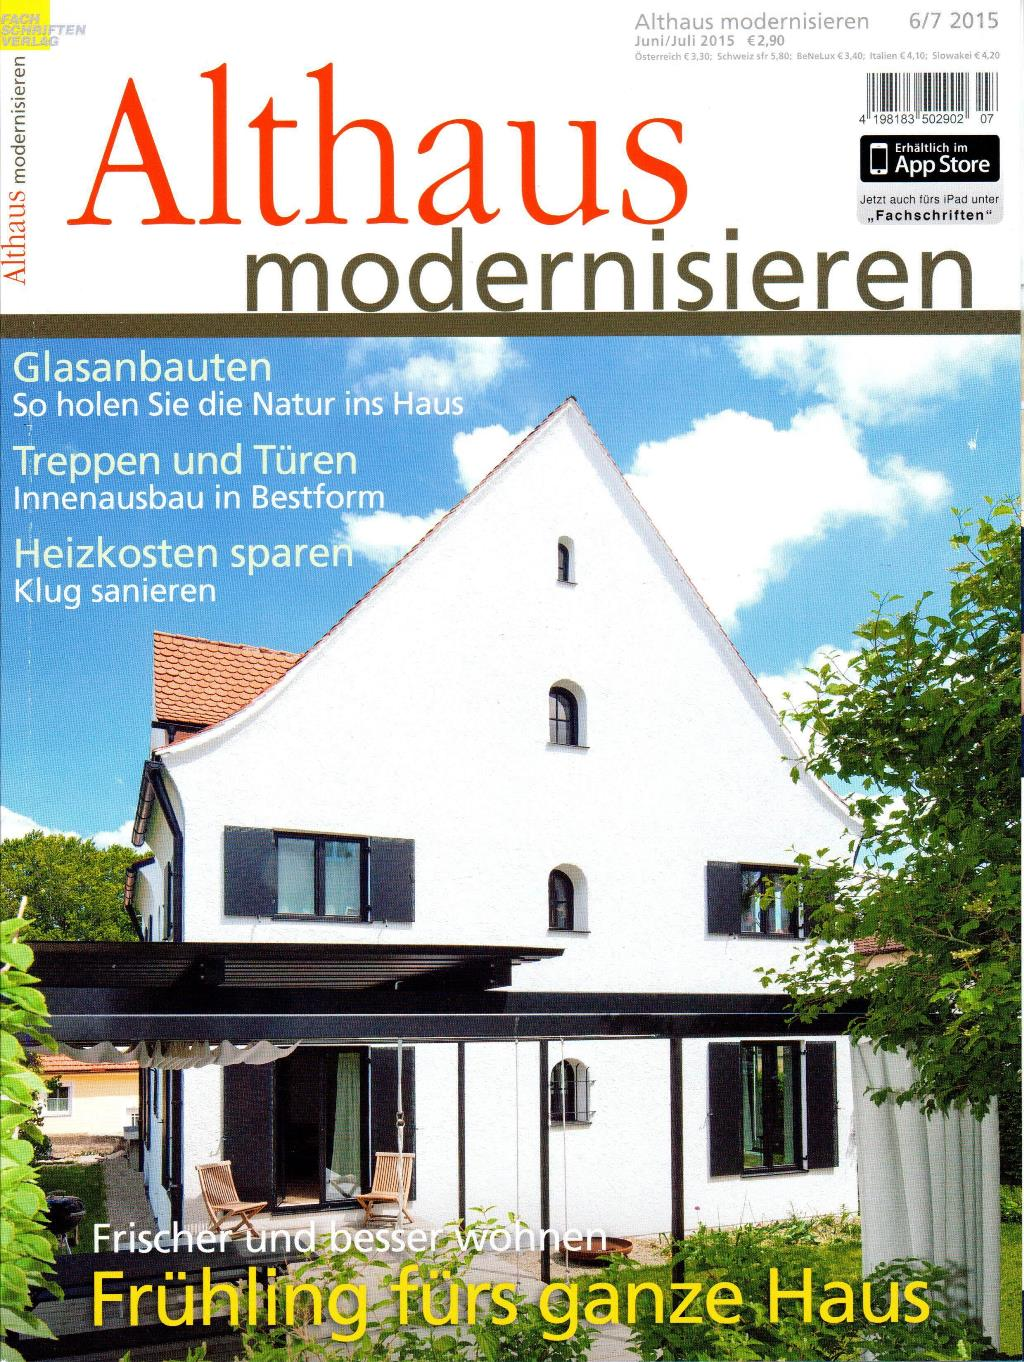 Althaus modernisieren